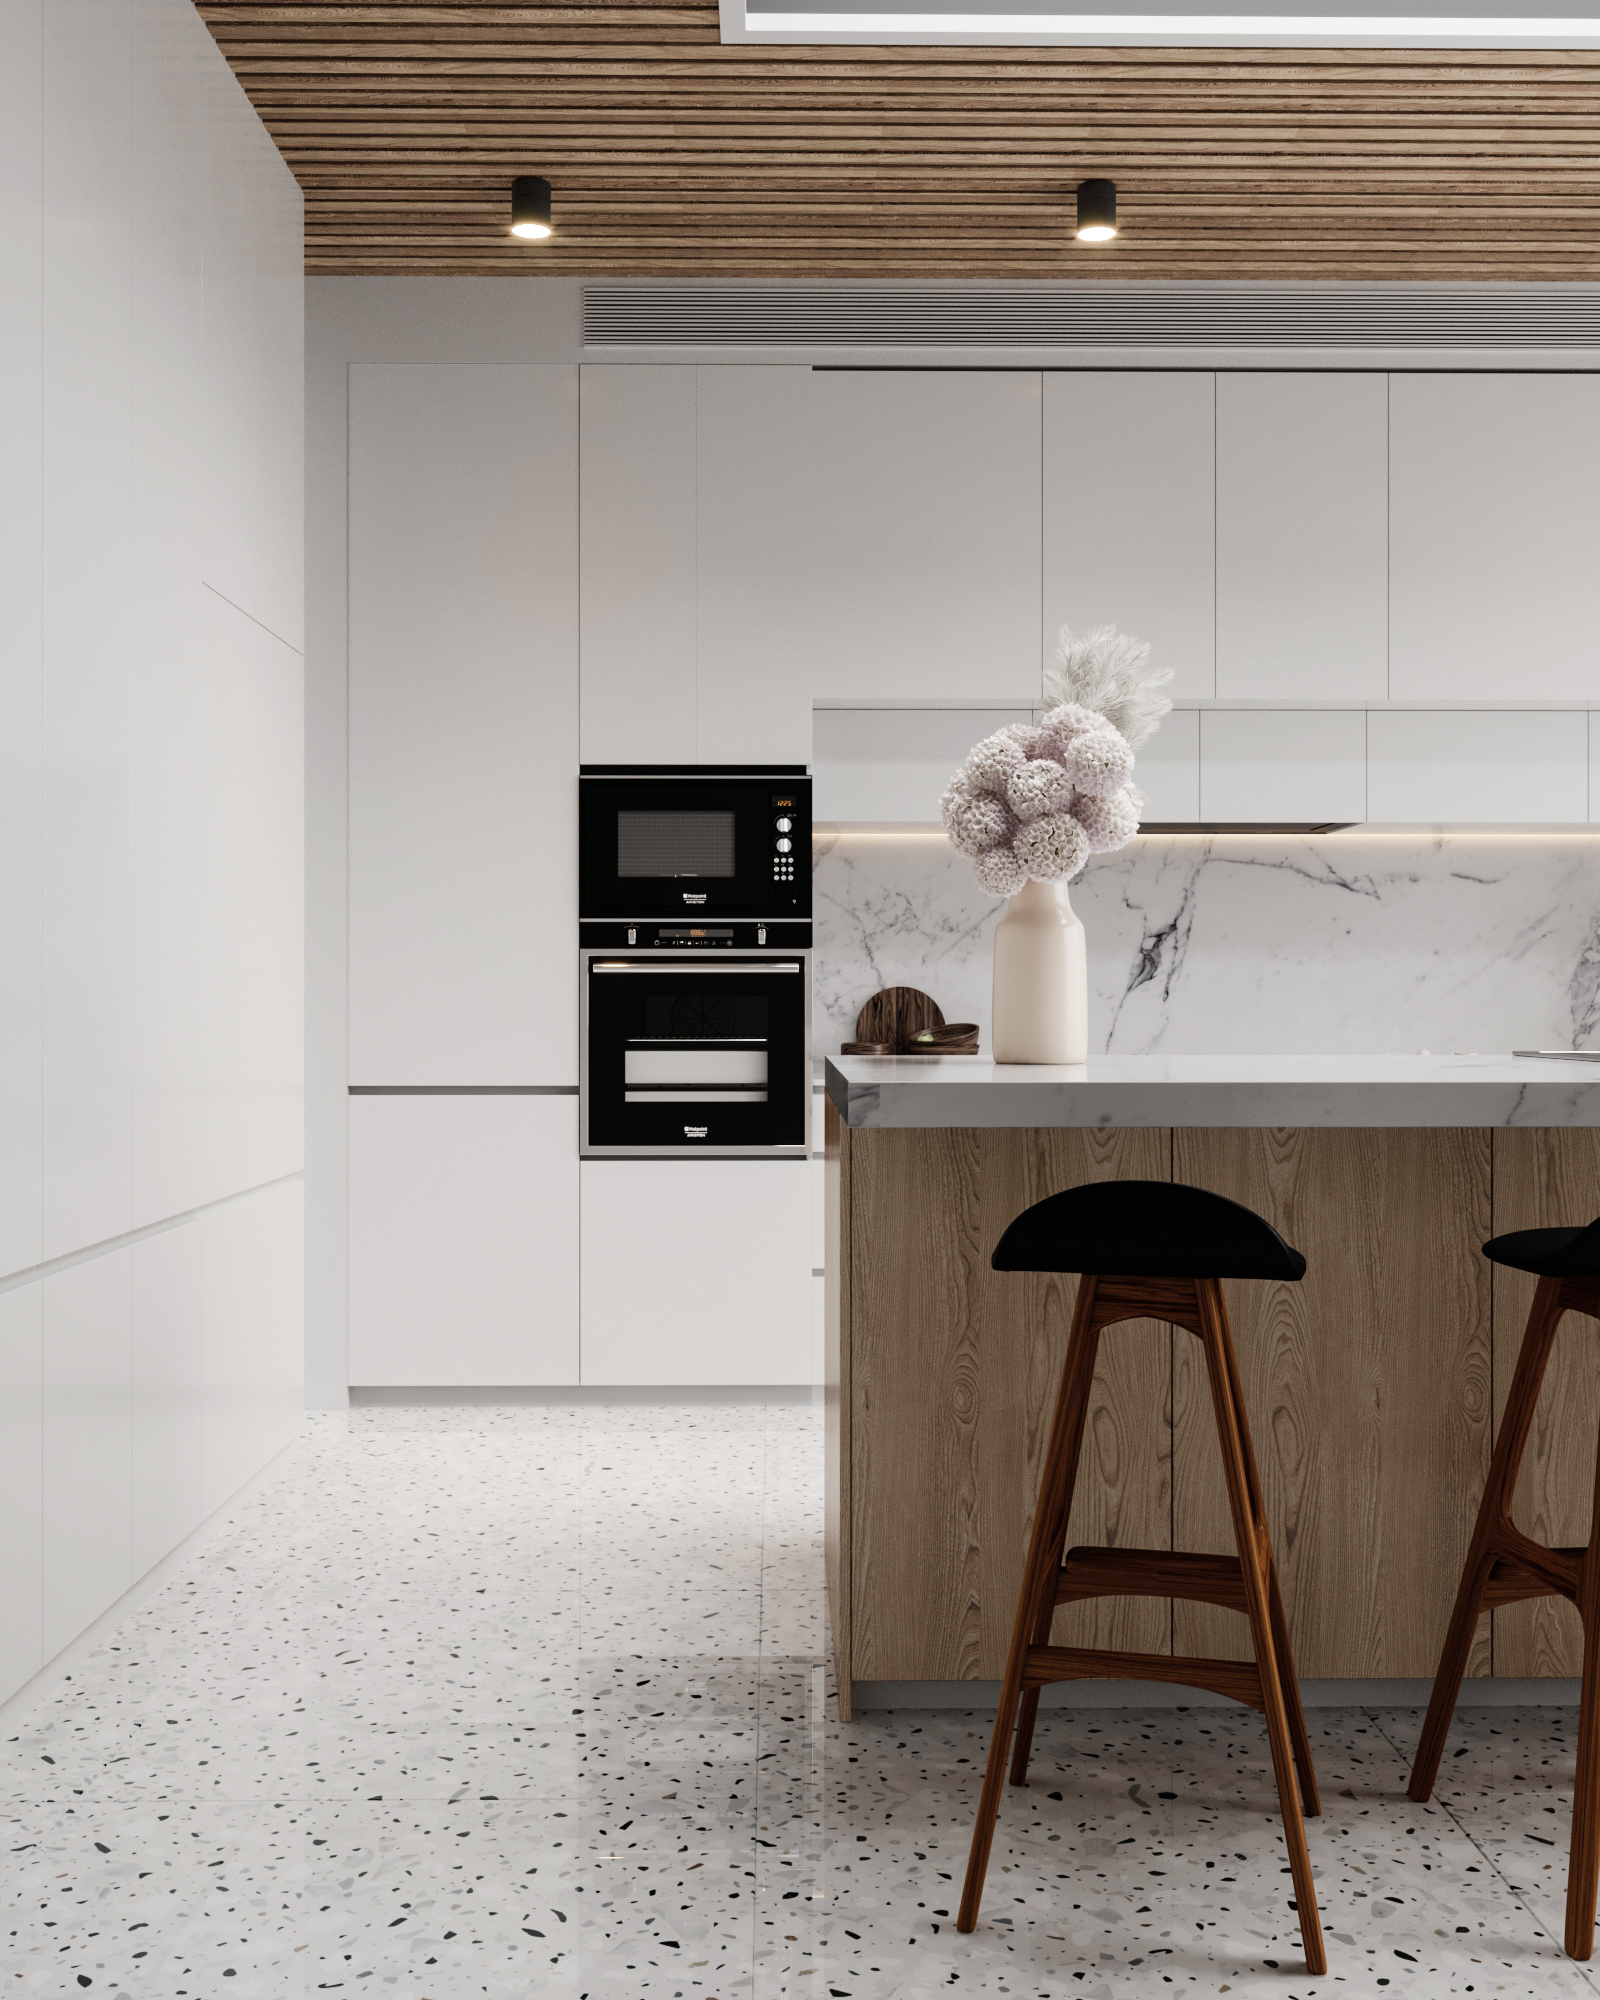 Modern Kitchen in 3d max corona render image